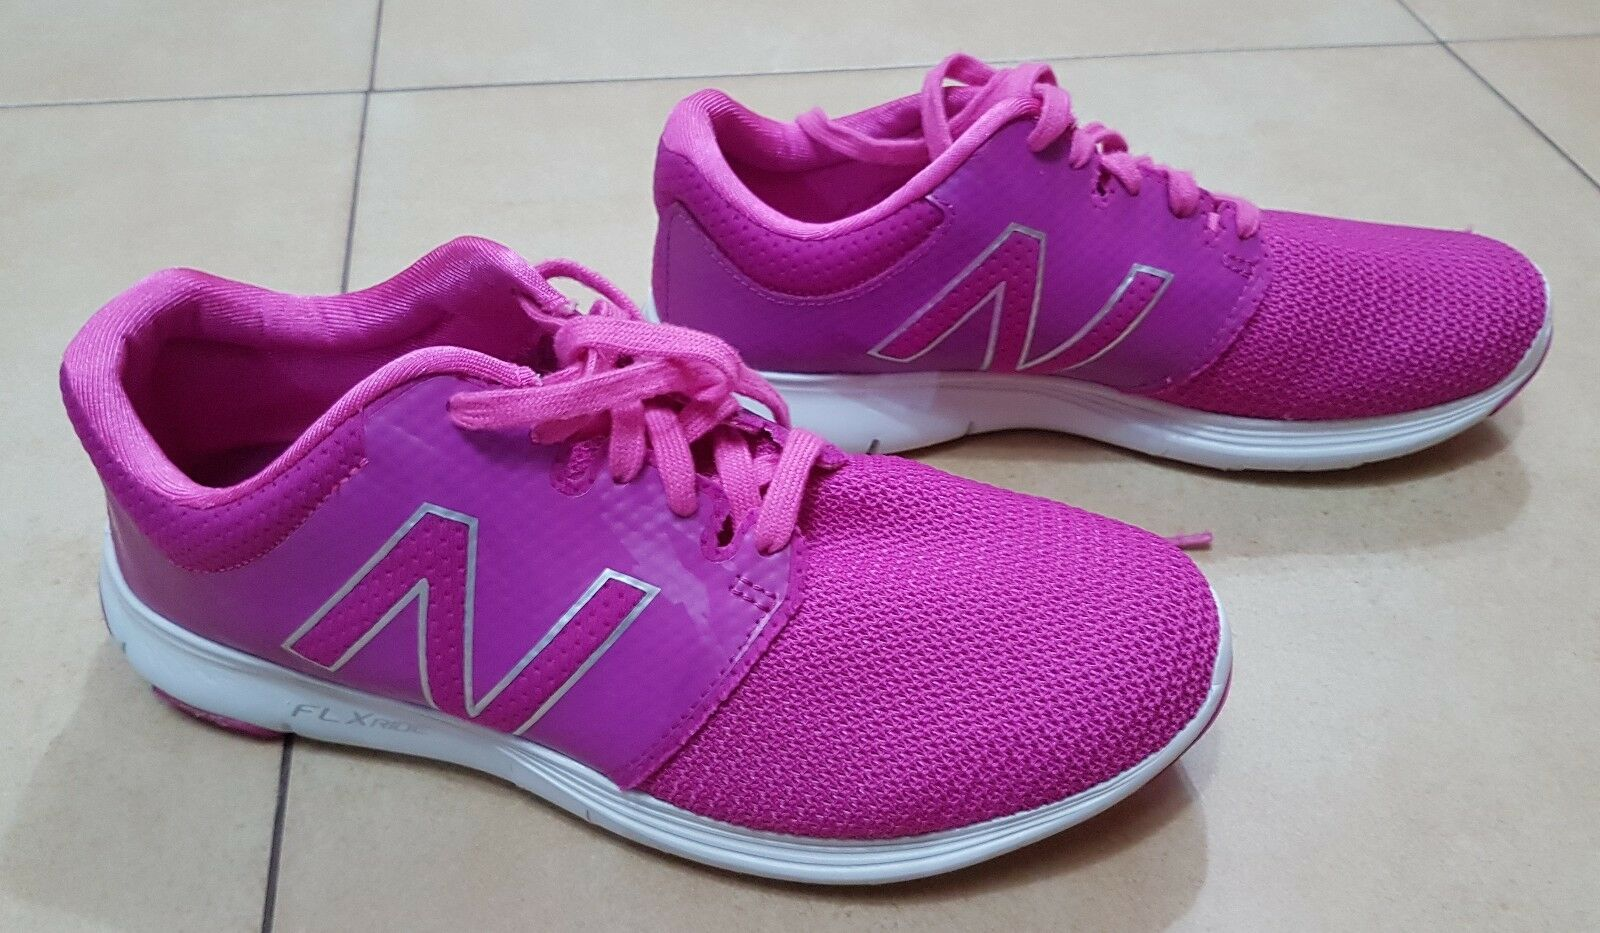 WOMENS NEW BALANCE PINK TRAINERS, SIZE 5 UK, VERY GOOD CONDITION